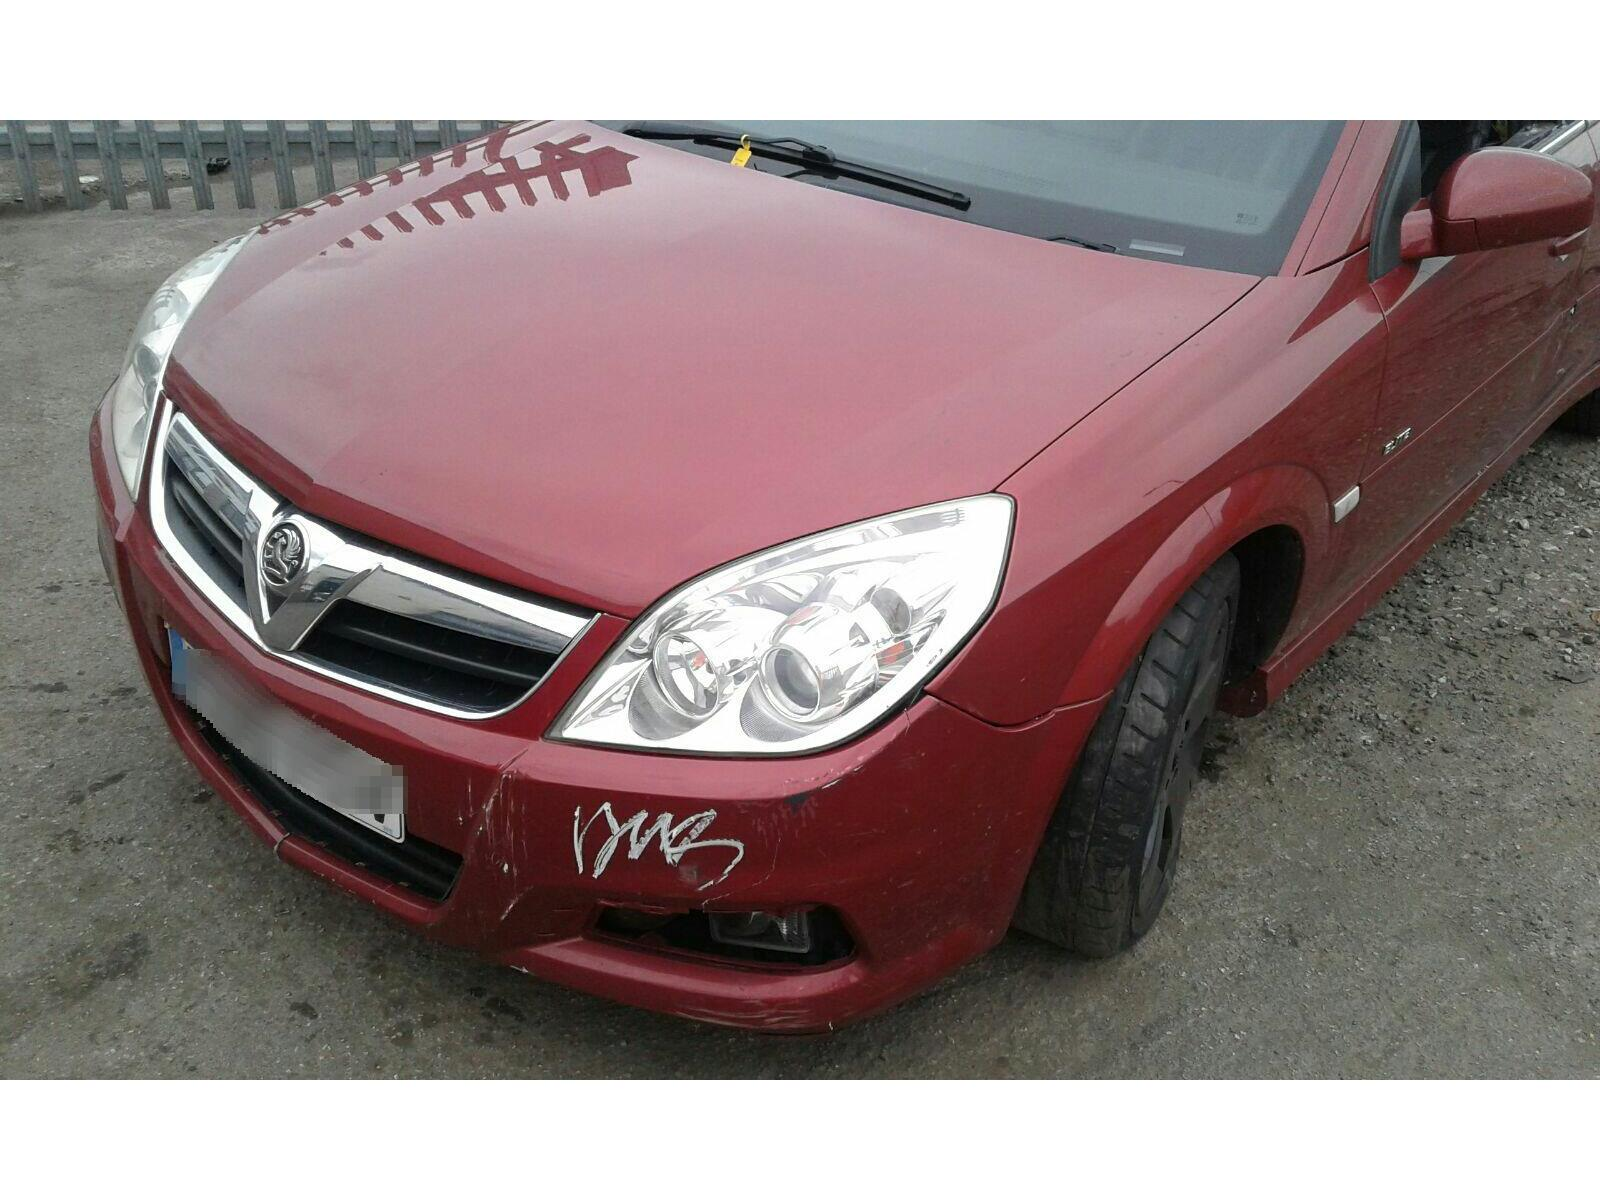 ... Vauxhall Signum 2003 To 2009 5 Door Hatchback ...